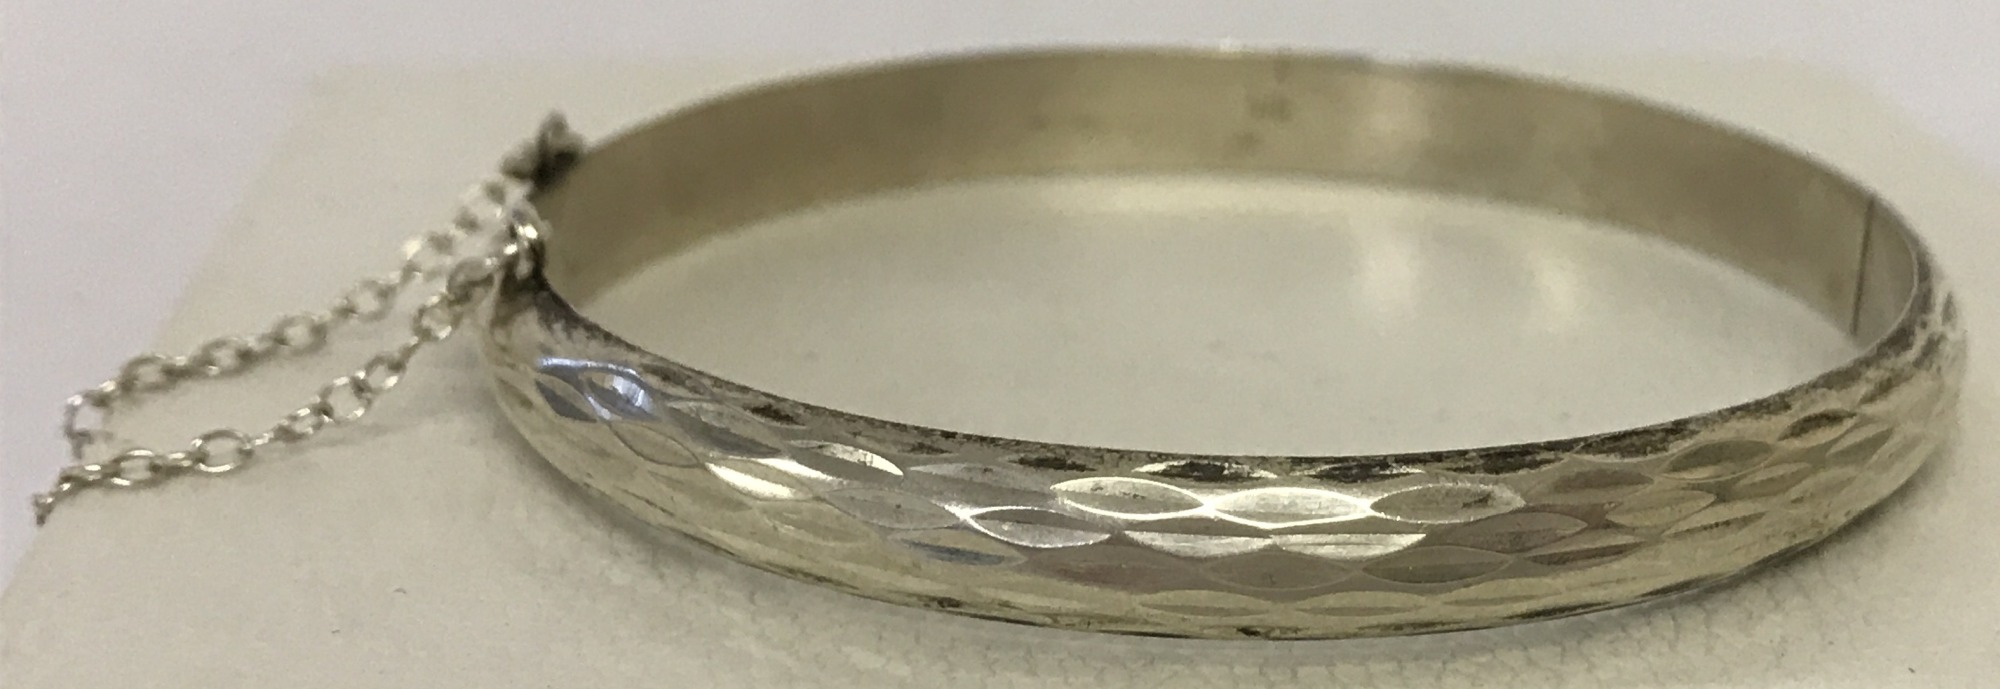 Lot 40 - A vintage silver hinged bangle with engine turned decoration and safety chain.